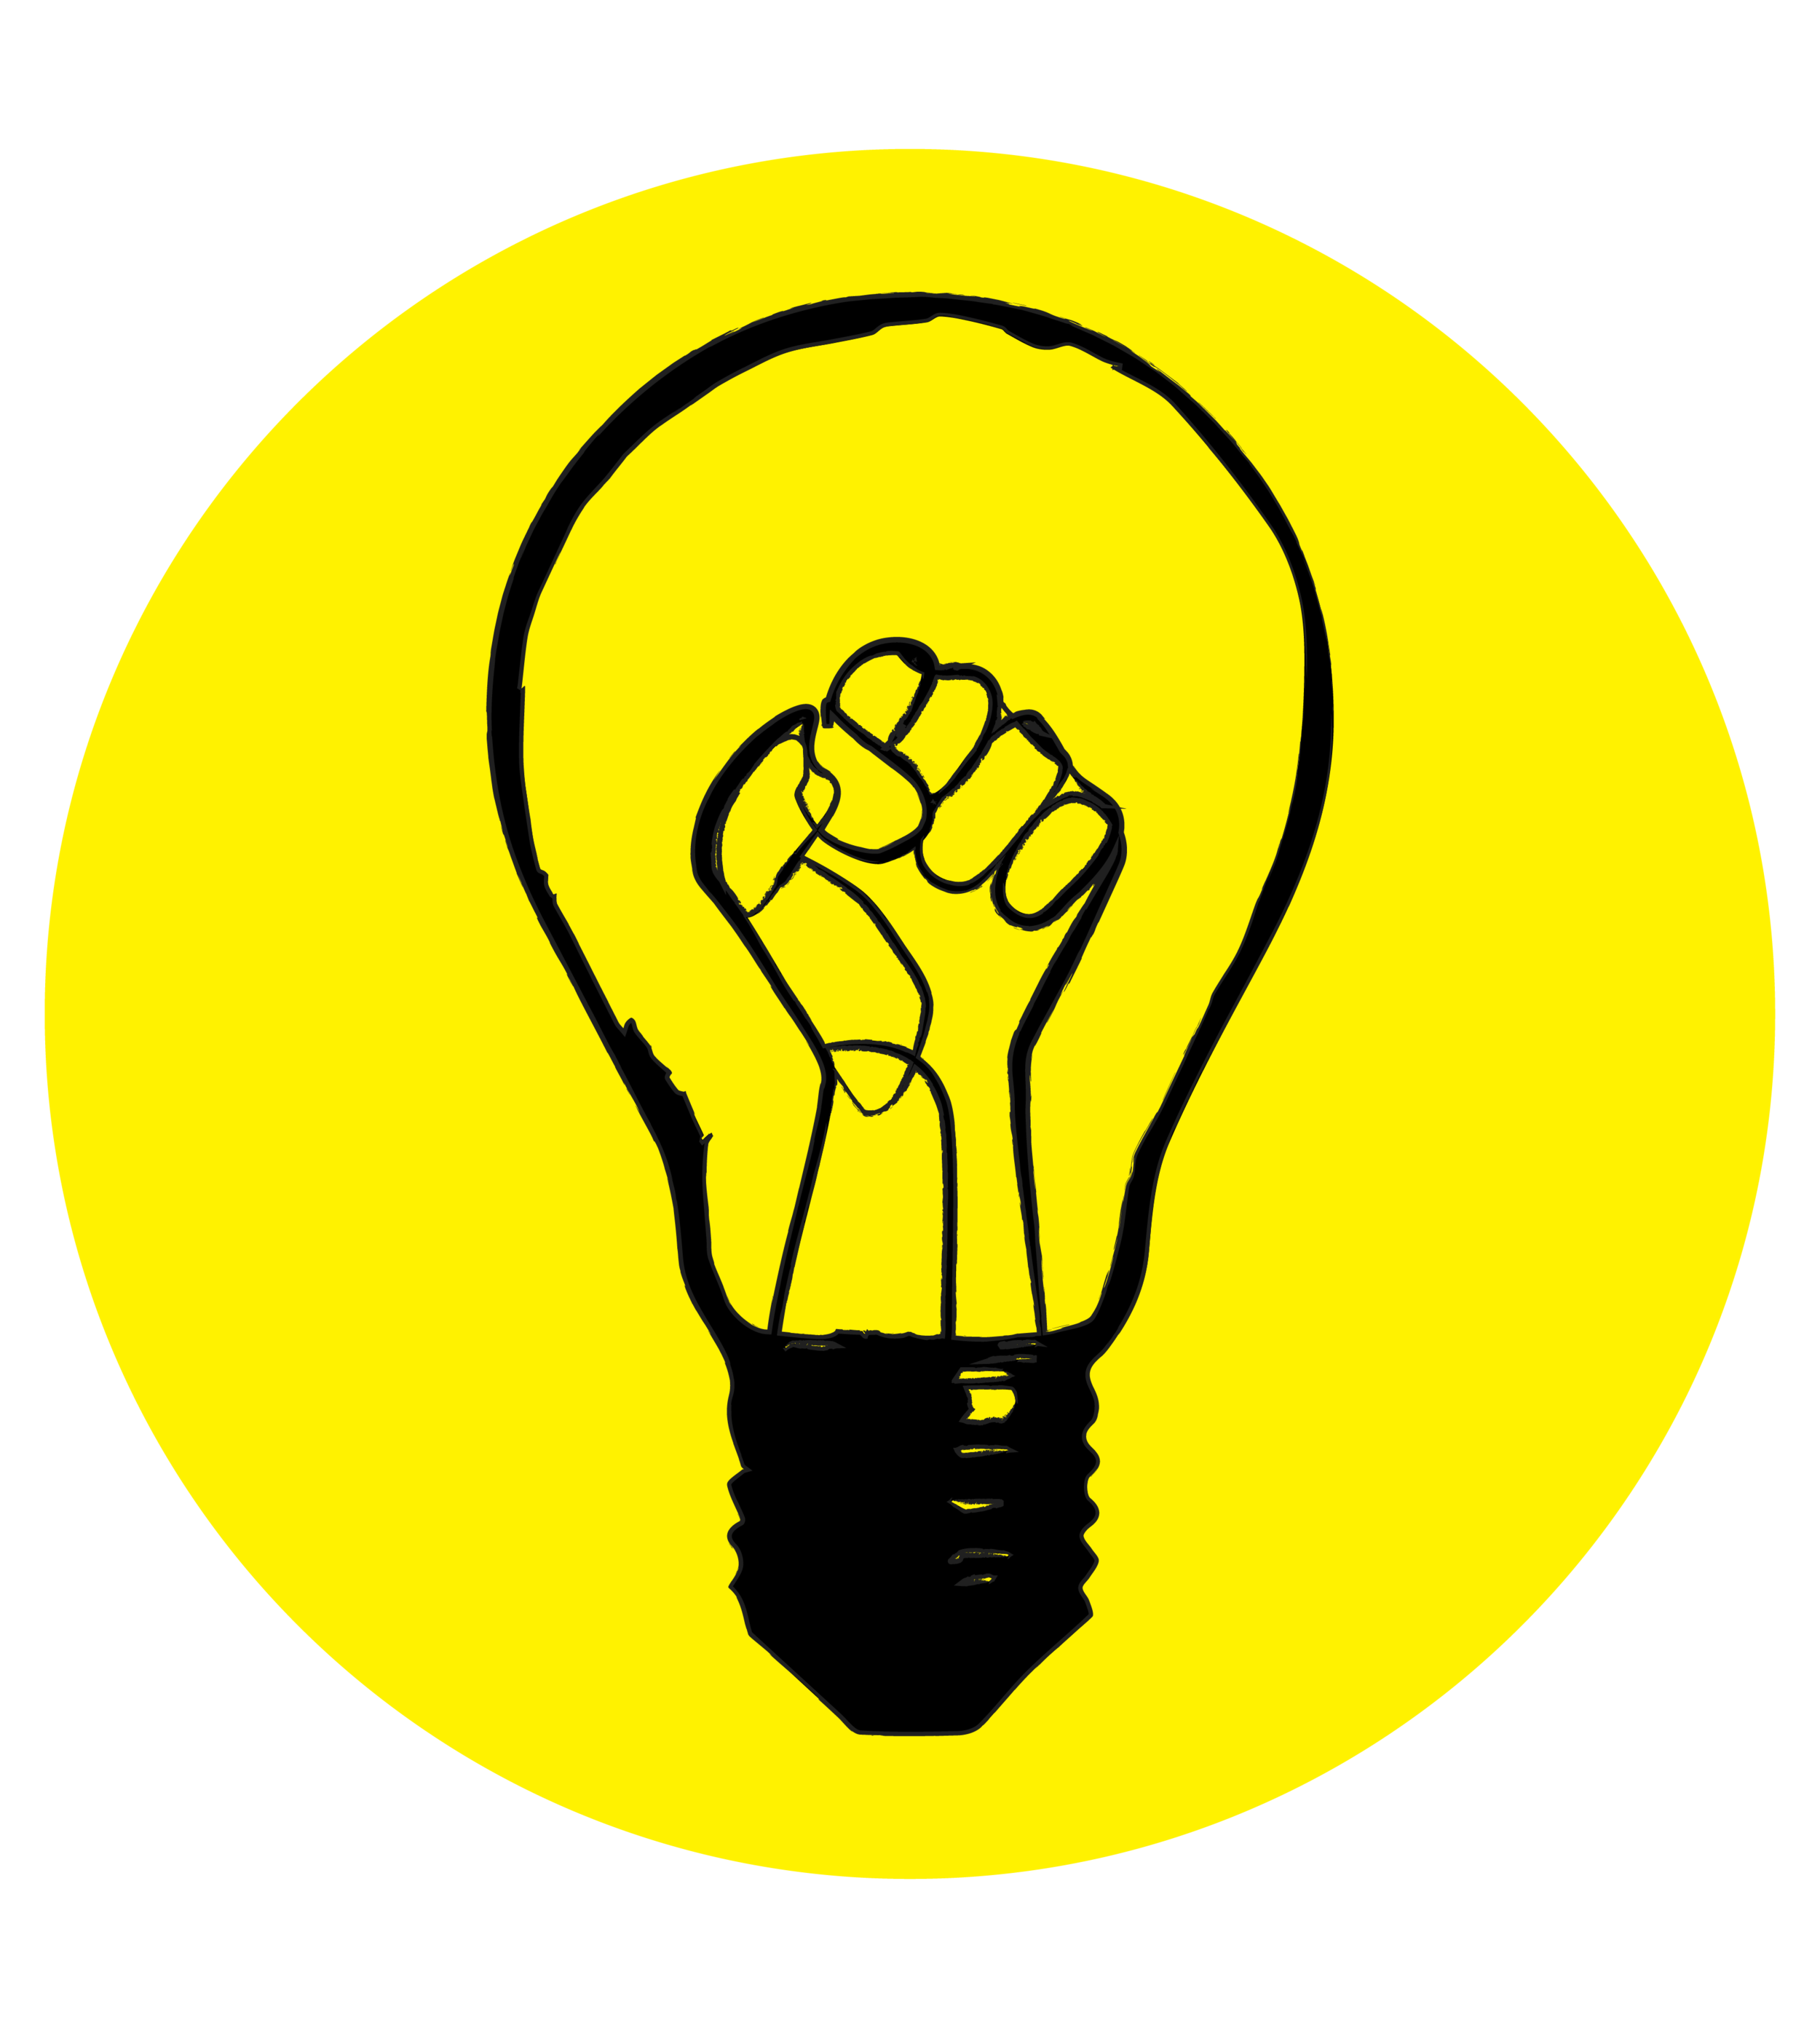 Lightbulbs Abolition Science black yellow.png